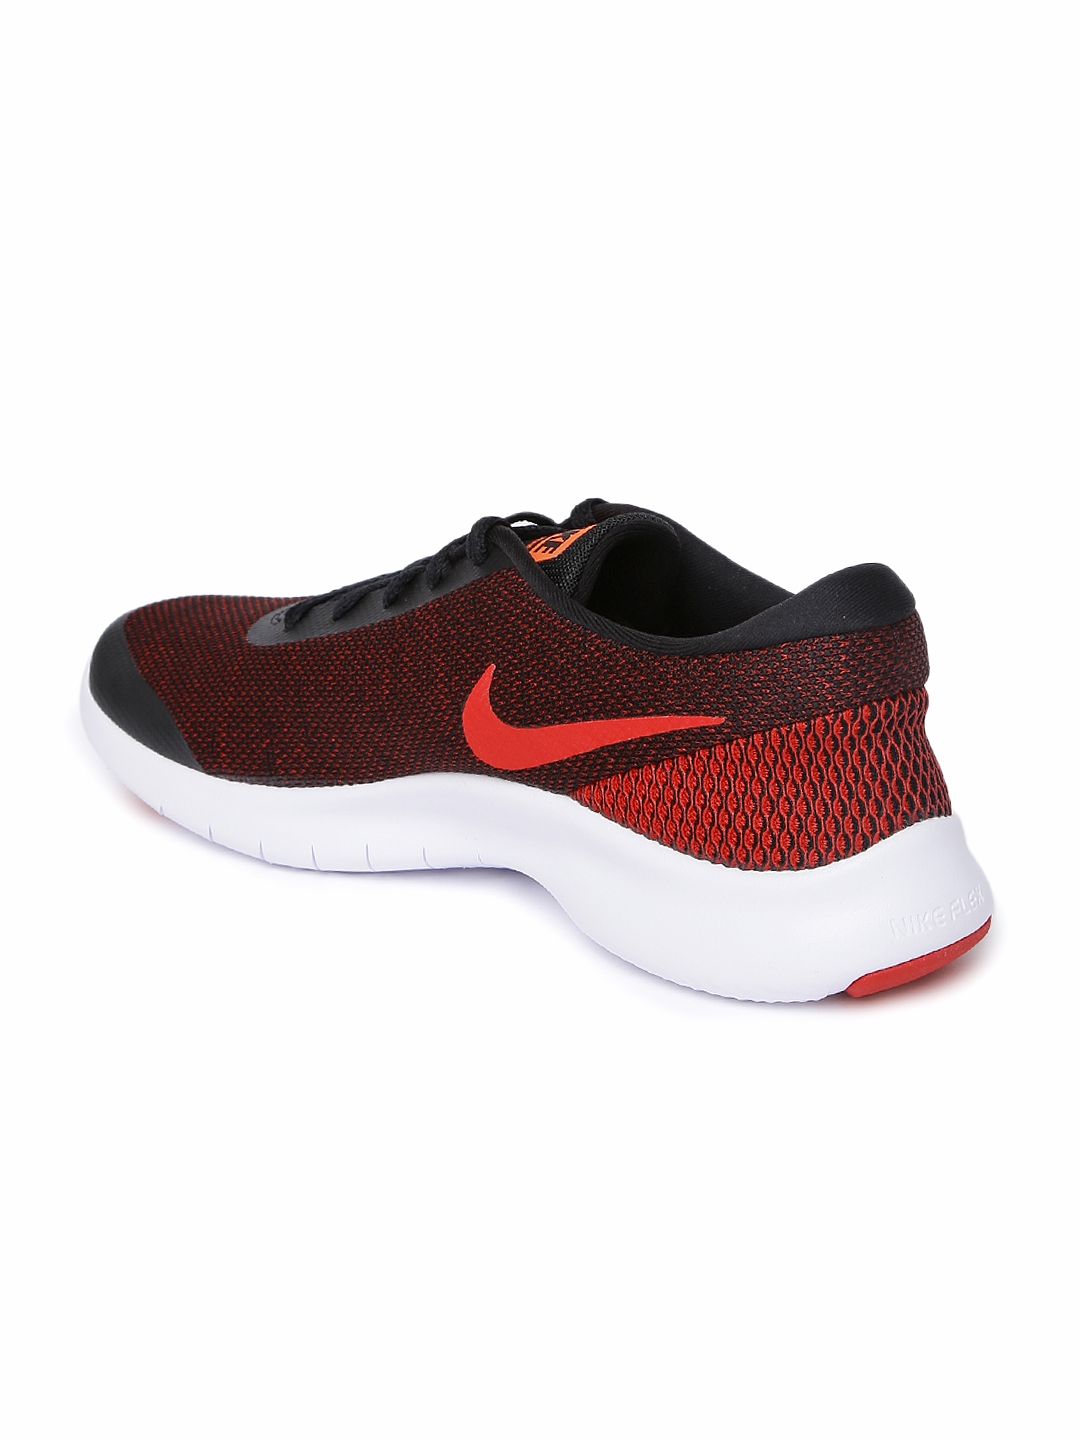 9a8c60994340a Buy Nike Men Maroon   Black FLEX EXPERIENCE RN 7 Running Shoes ...